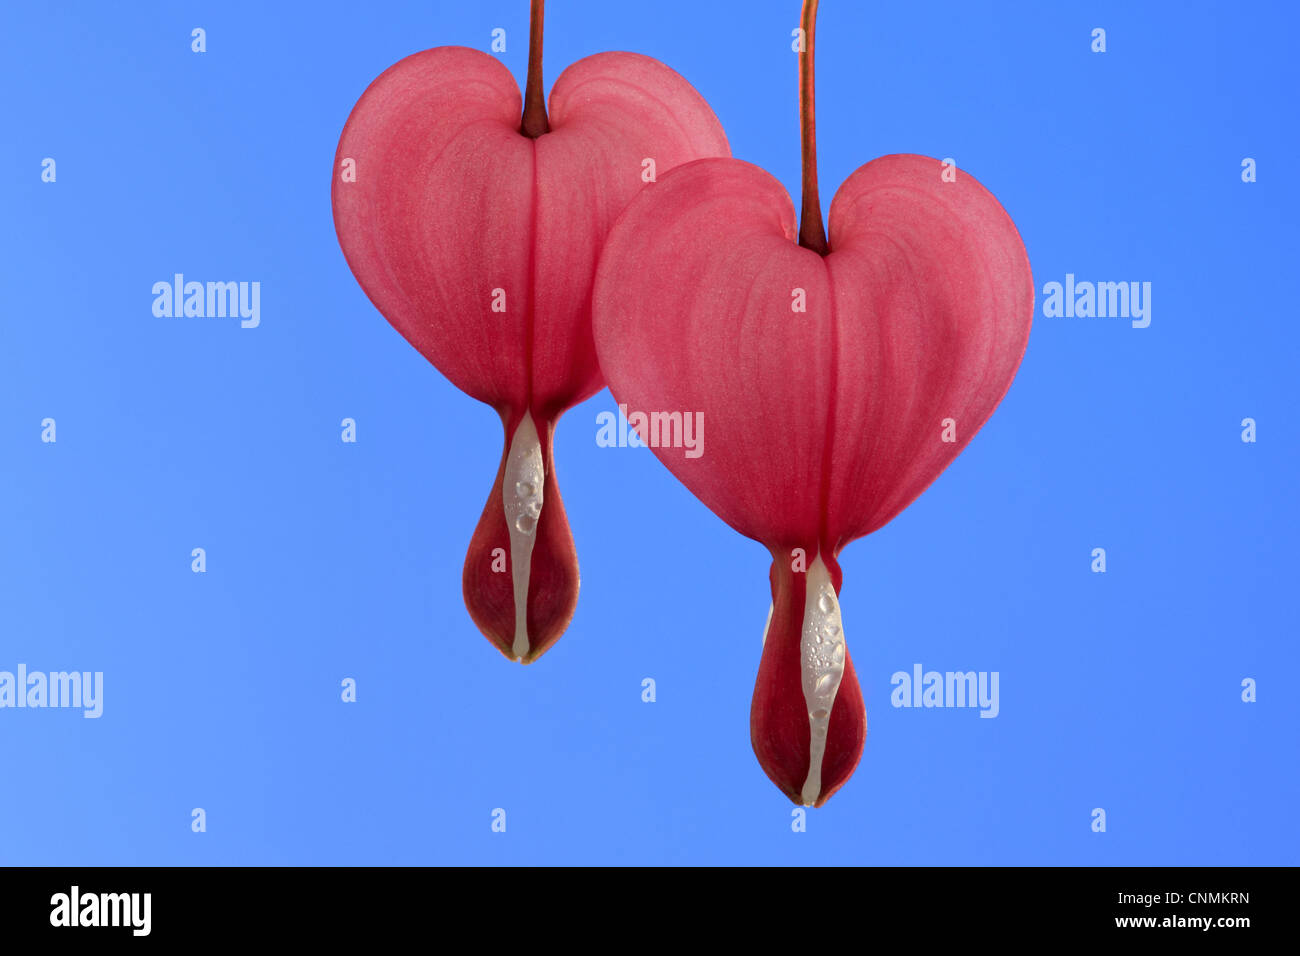 tr nendes herz dicentra spectabilis nahaufnahme von zwei blumen stockfoto bild 47783113 alamy. Black Bedroom Furniture Sets. Home Design Ideas